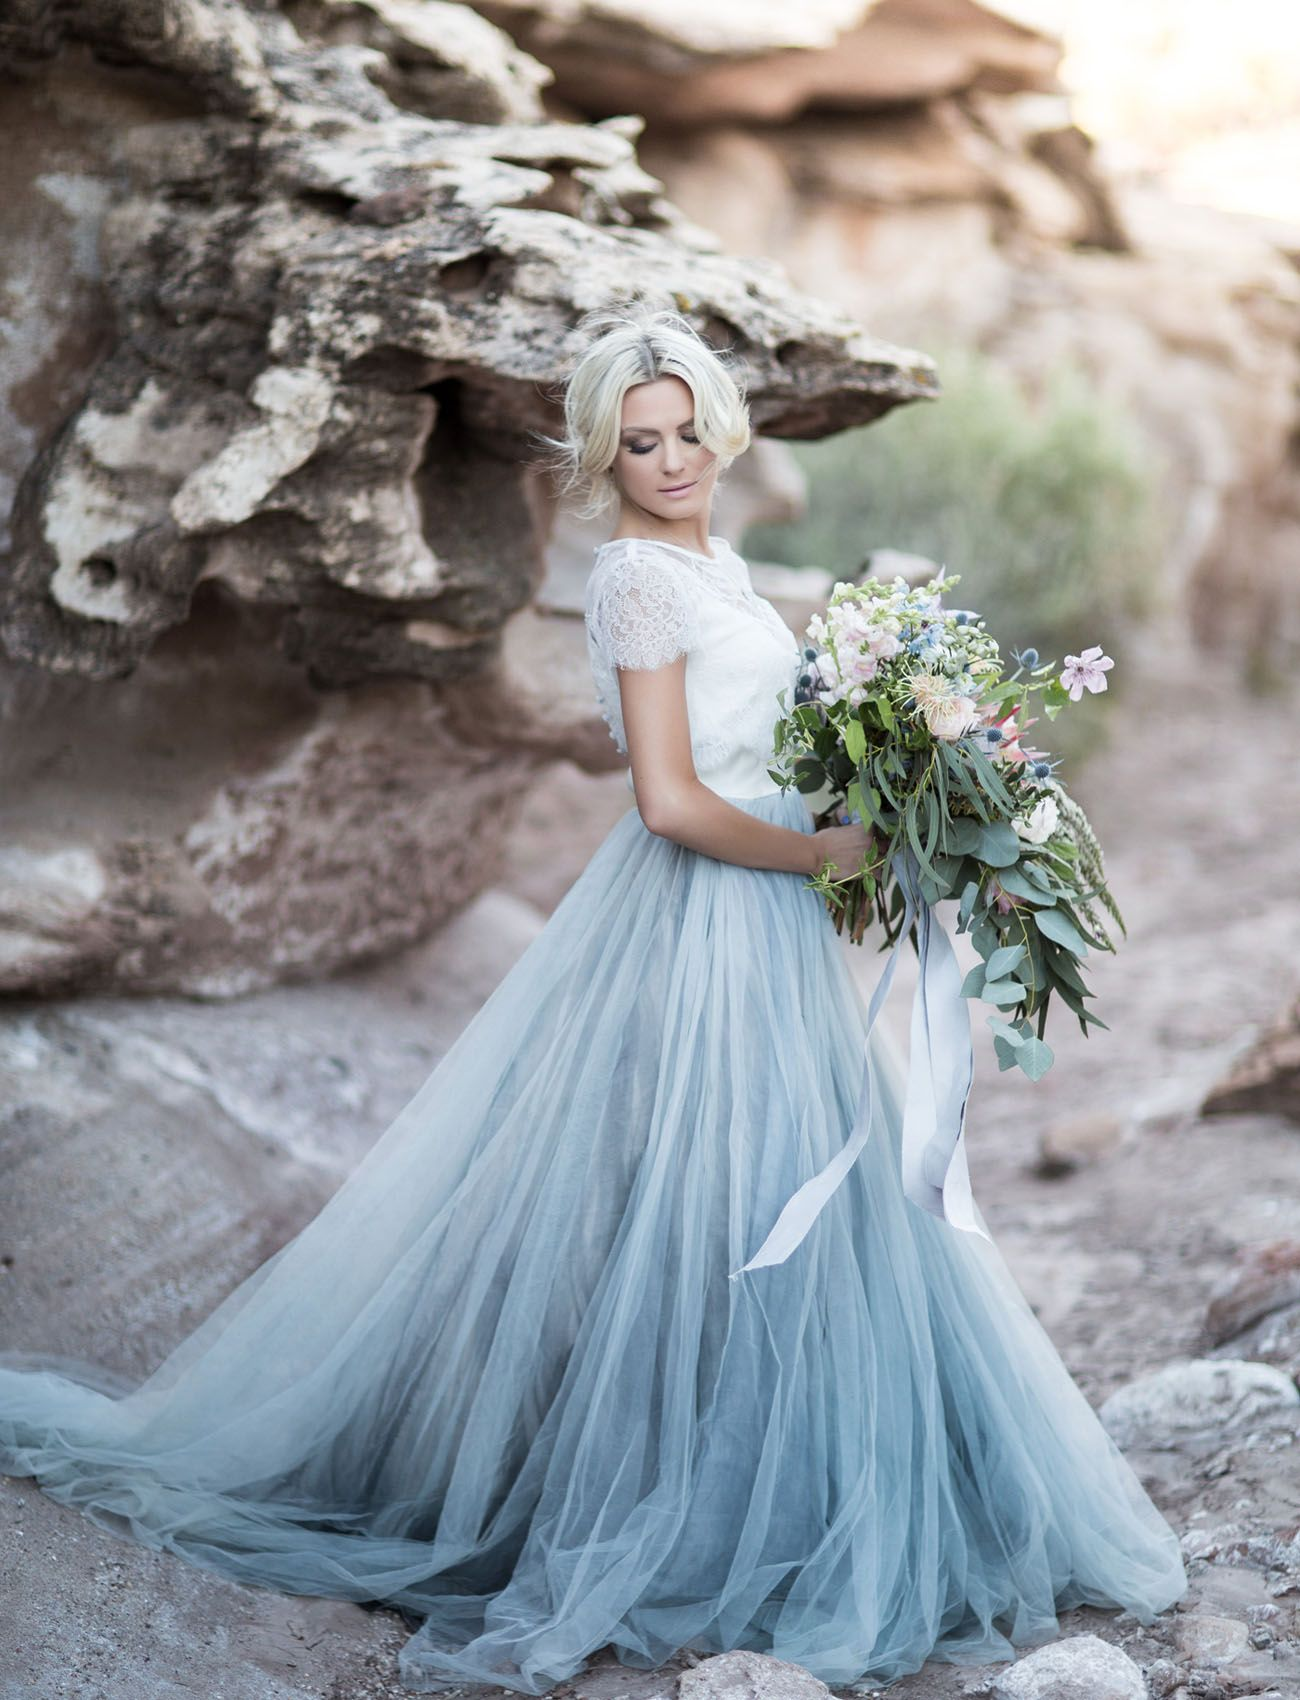 Desert Wedding Inspiration at Zion National Park | Vestidos de novia ...